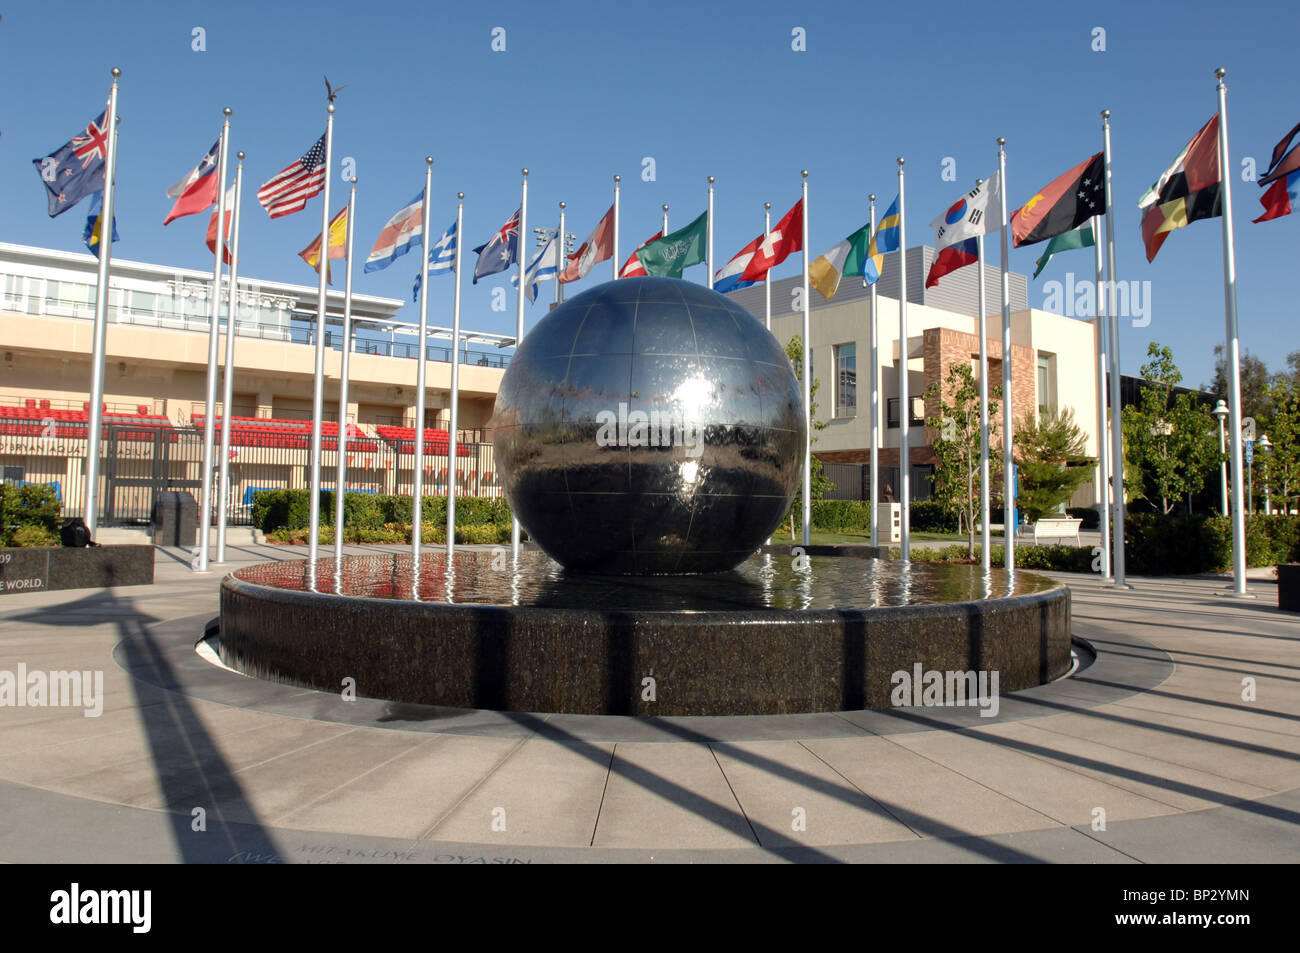 Chapman University's  Global Citizen's Plaza Fountain with flags of many nations and a globe which rotates - Stock Image